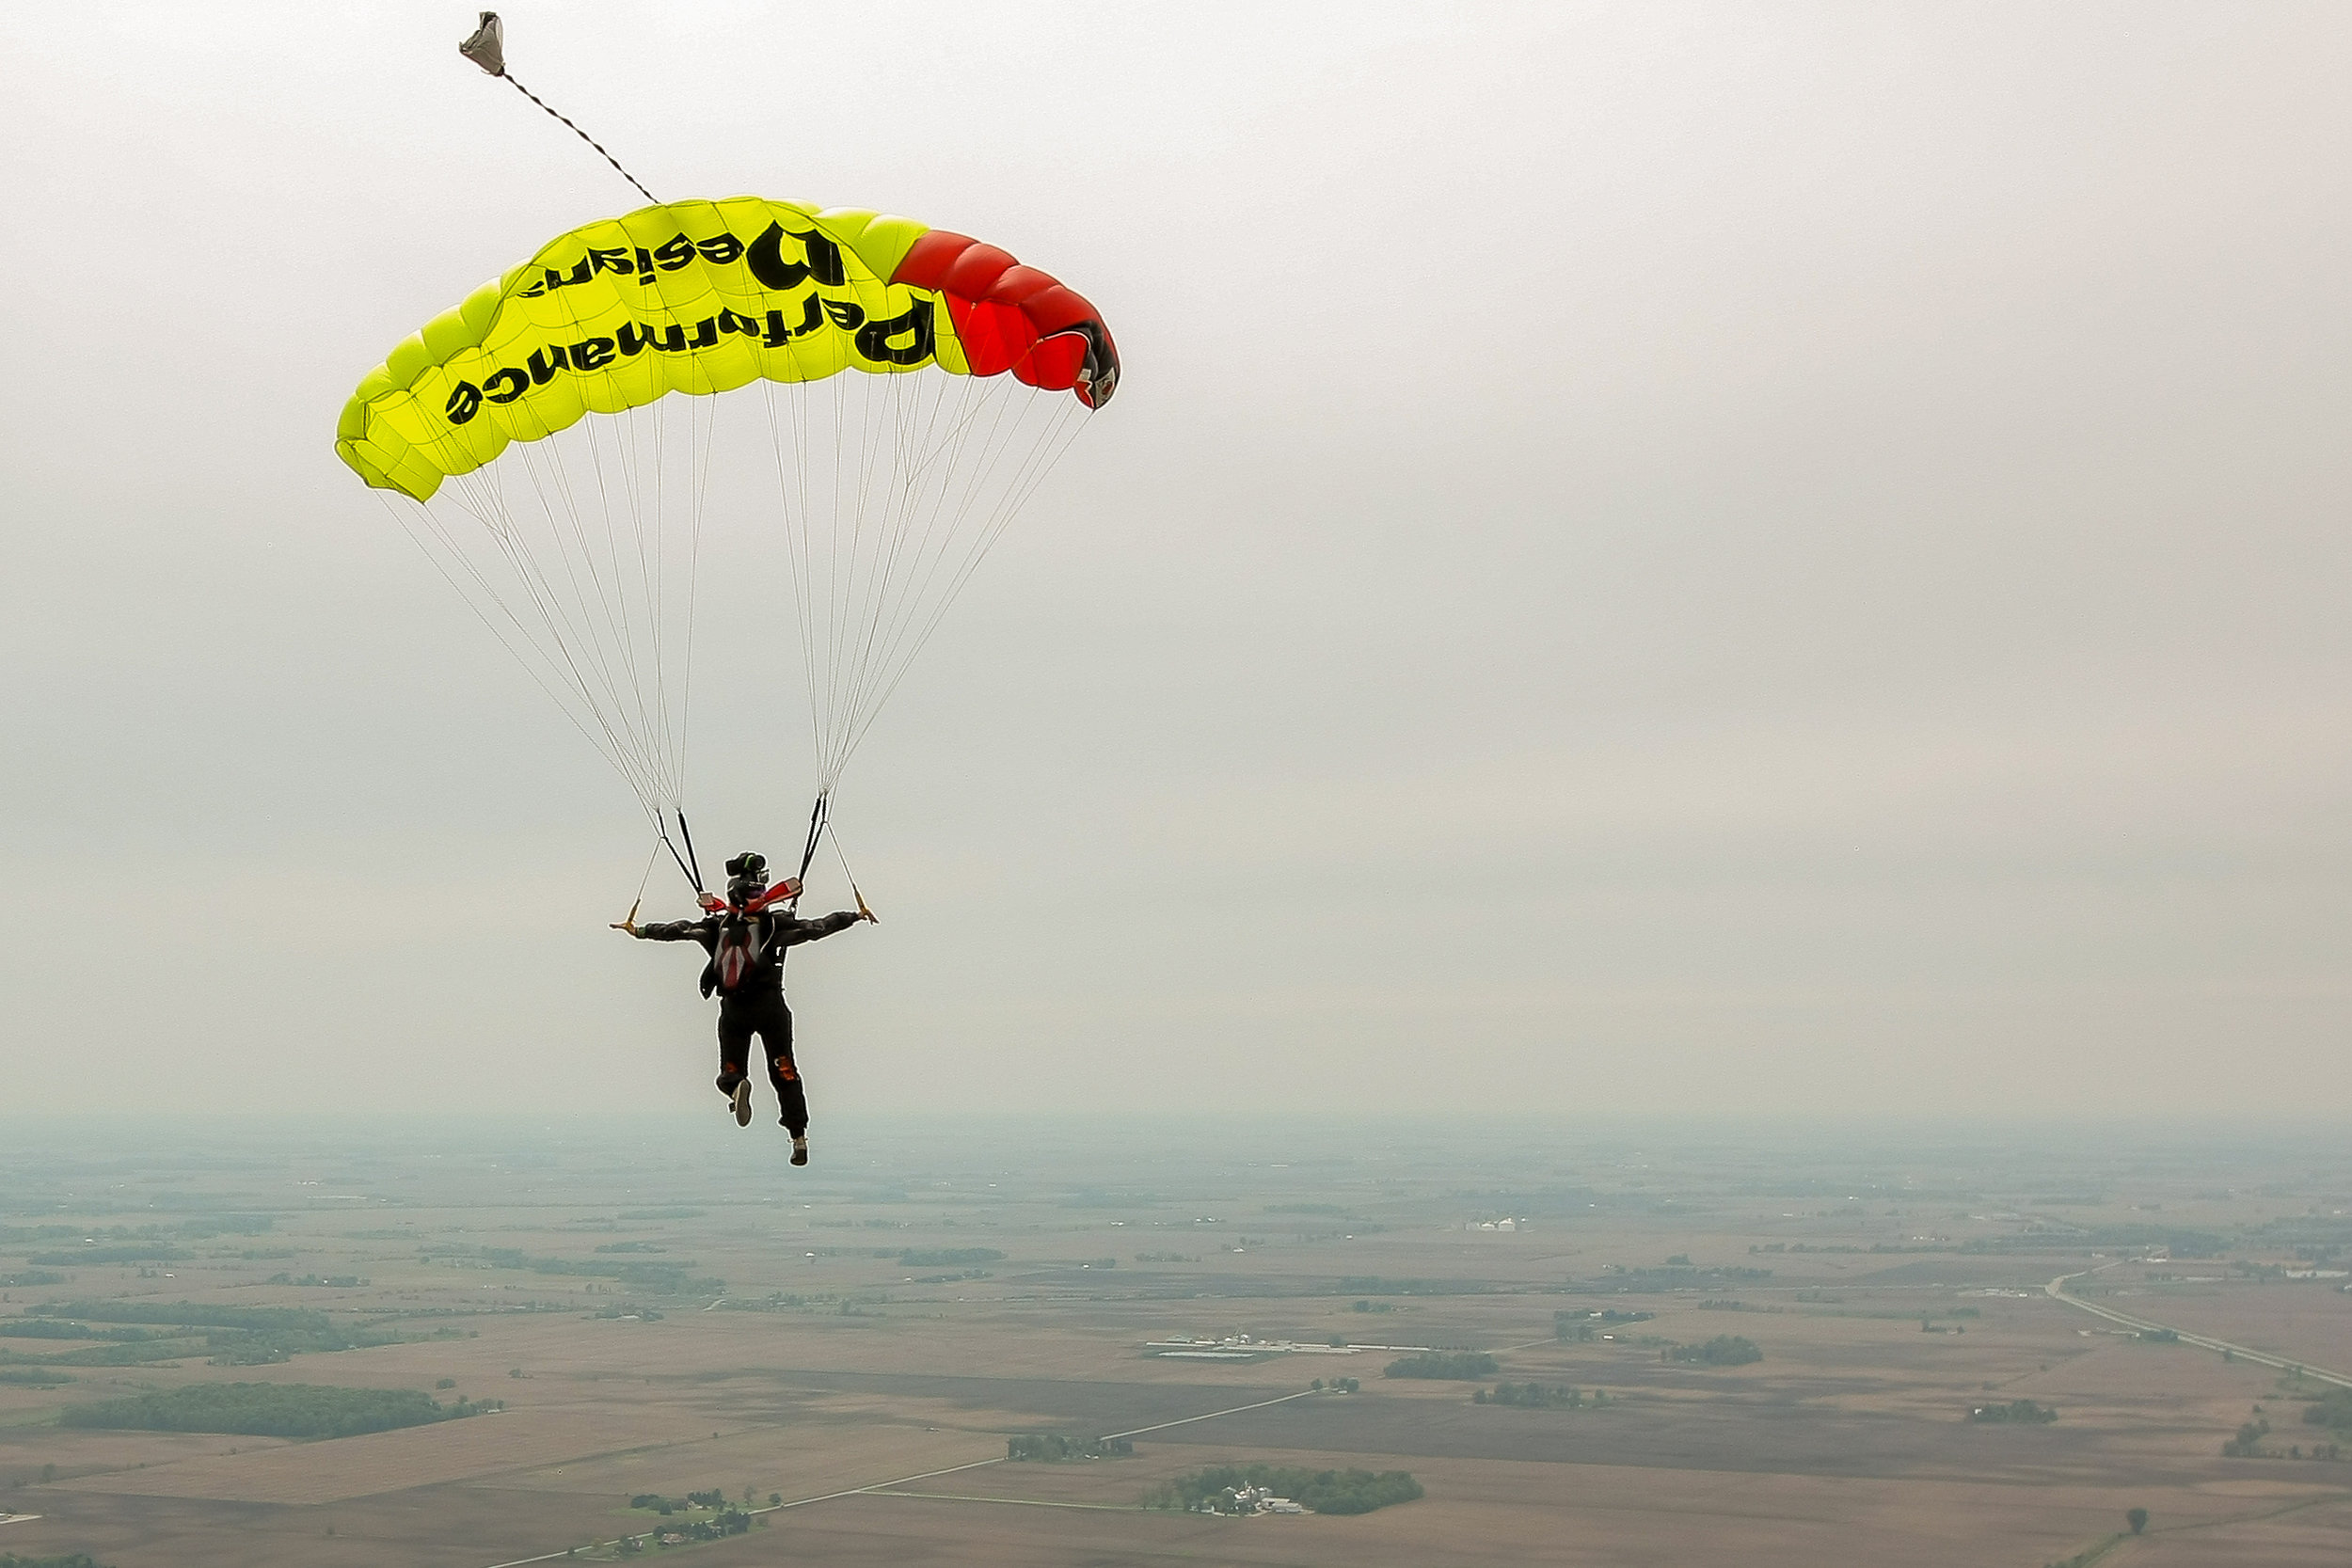 Skydive Videographer Under Canopy